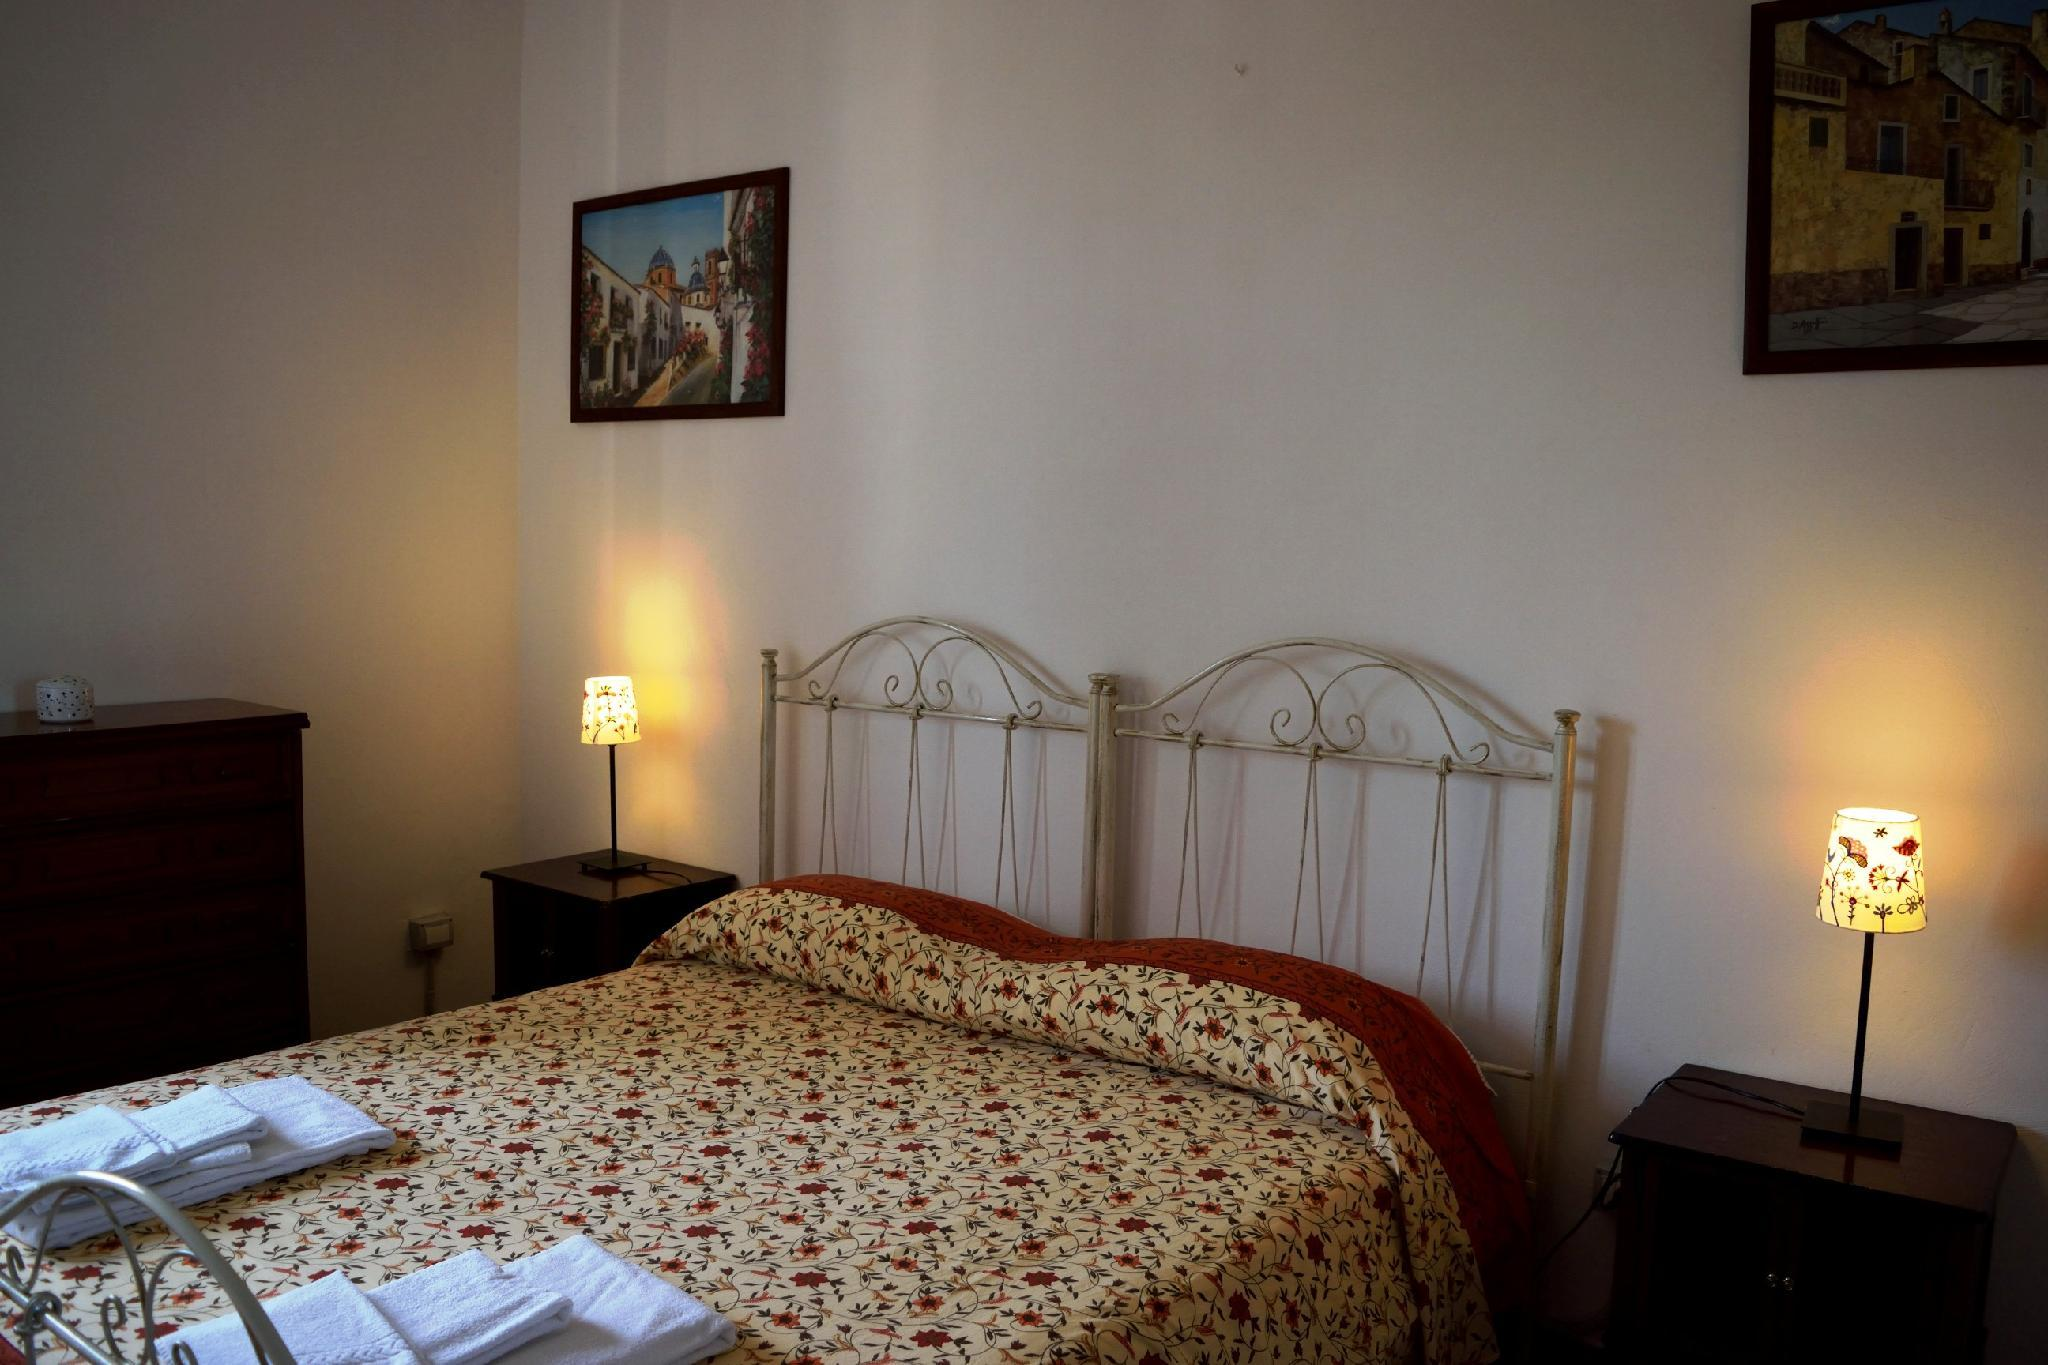 Accommodation Ideal For A Couple With A Bimbo